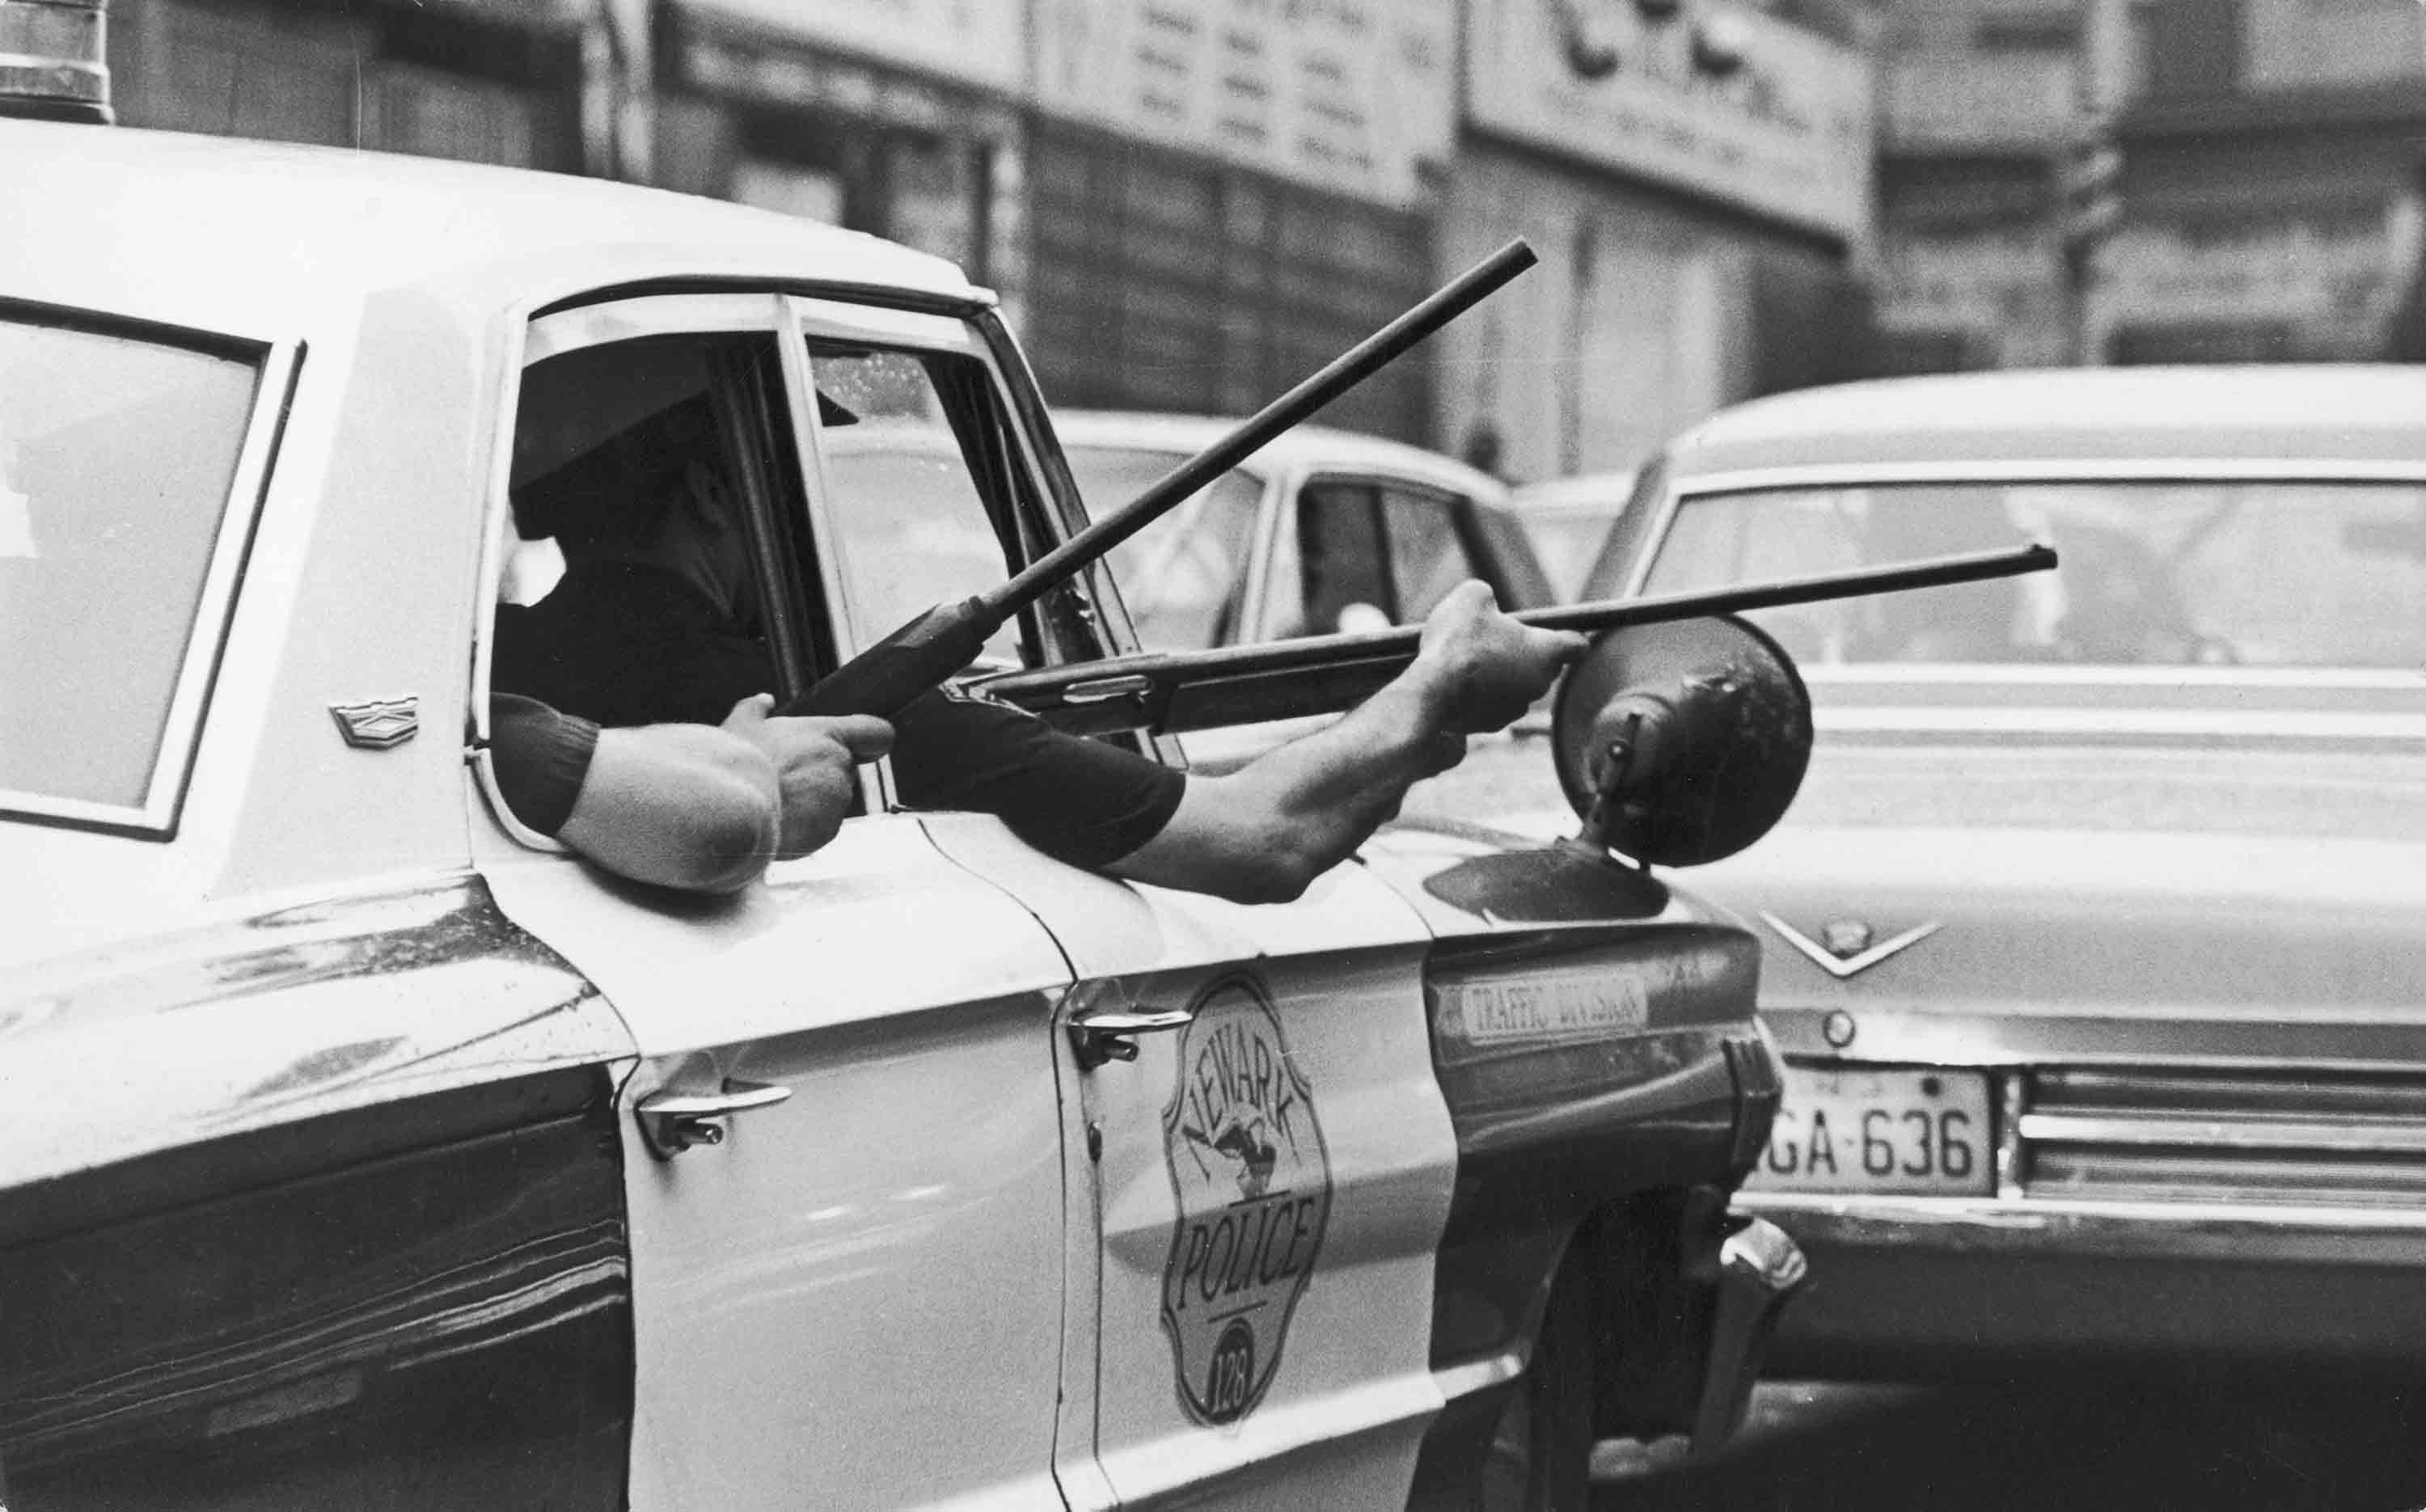 Police hold rifles out of the windows of a police cruiser during the Newark riots, Newark, July 14, 1967